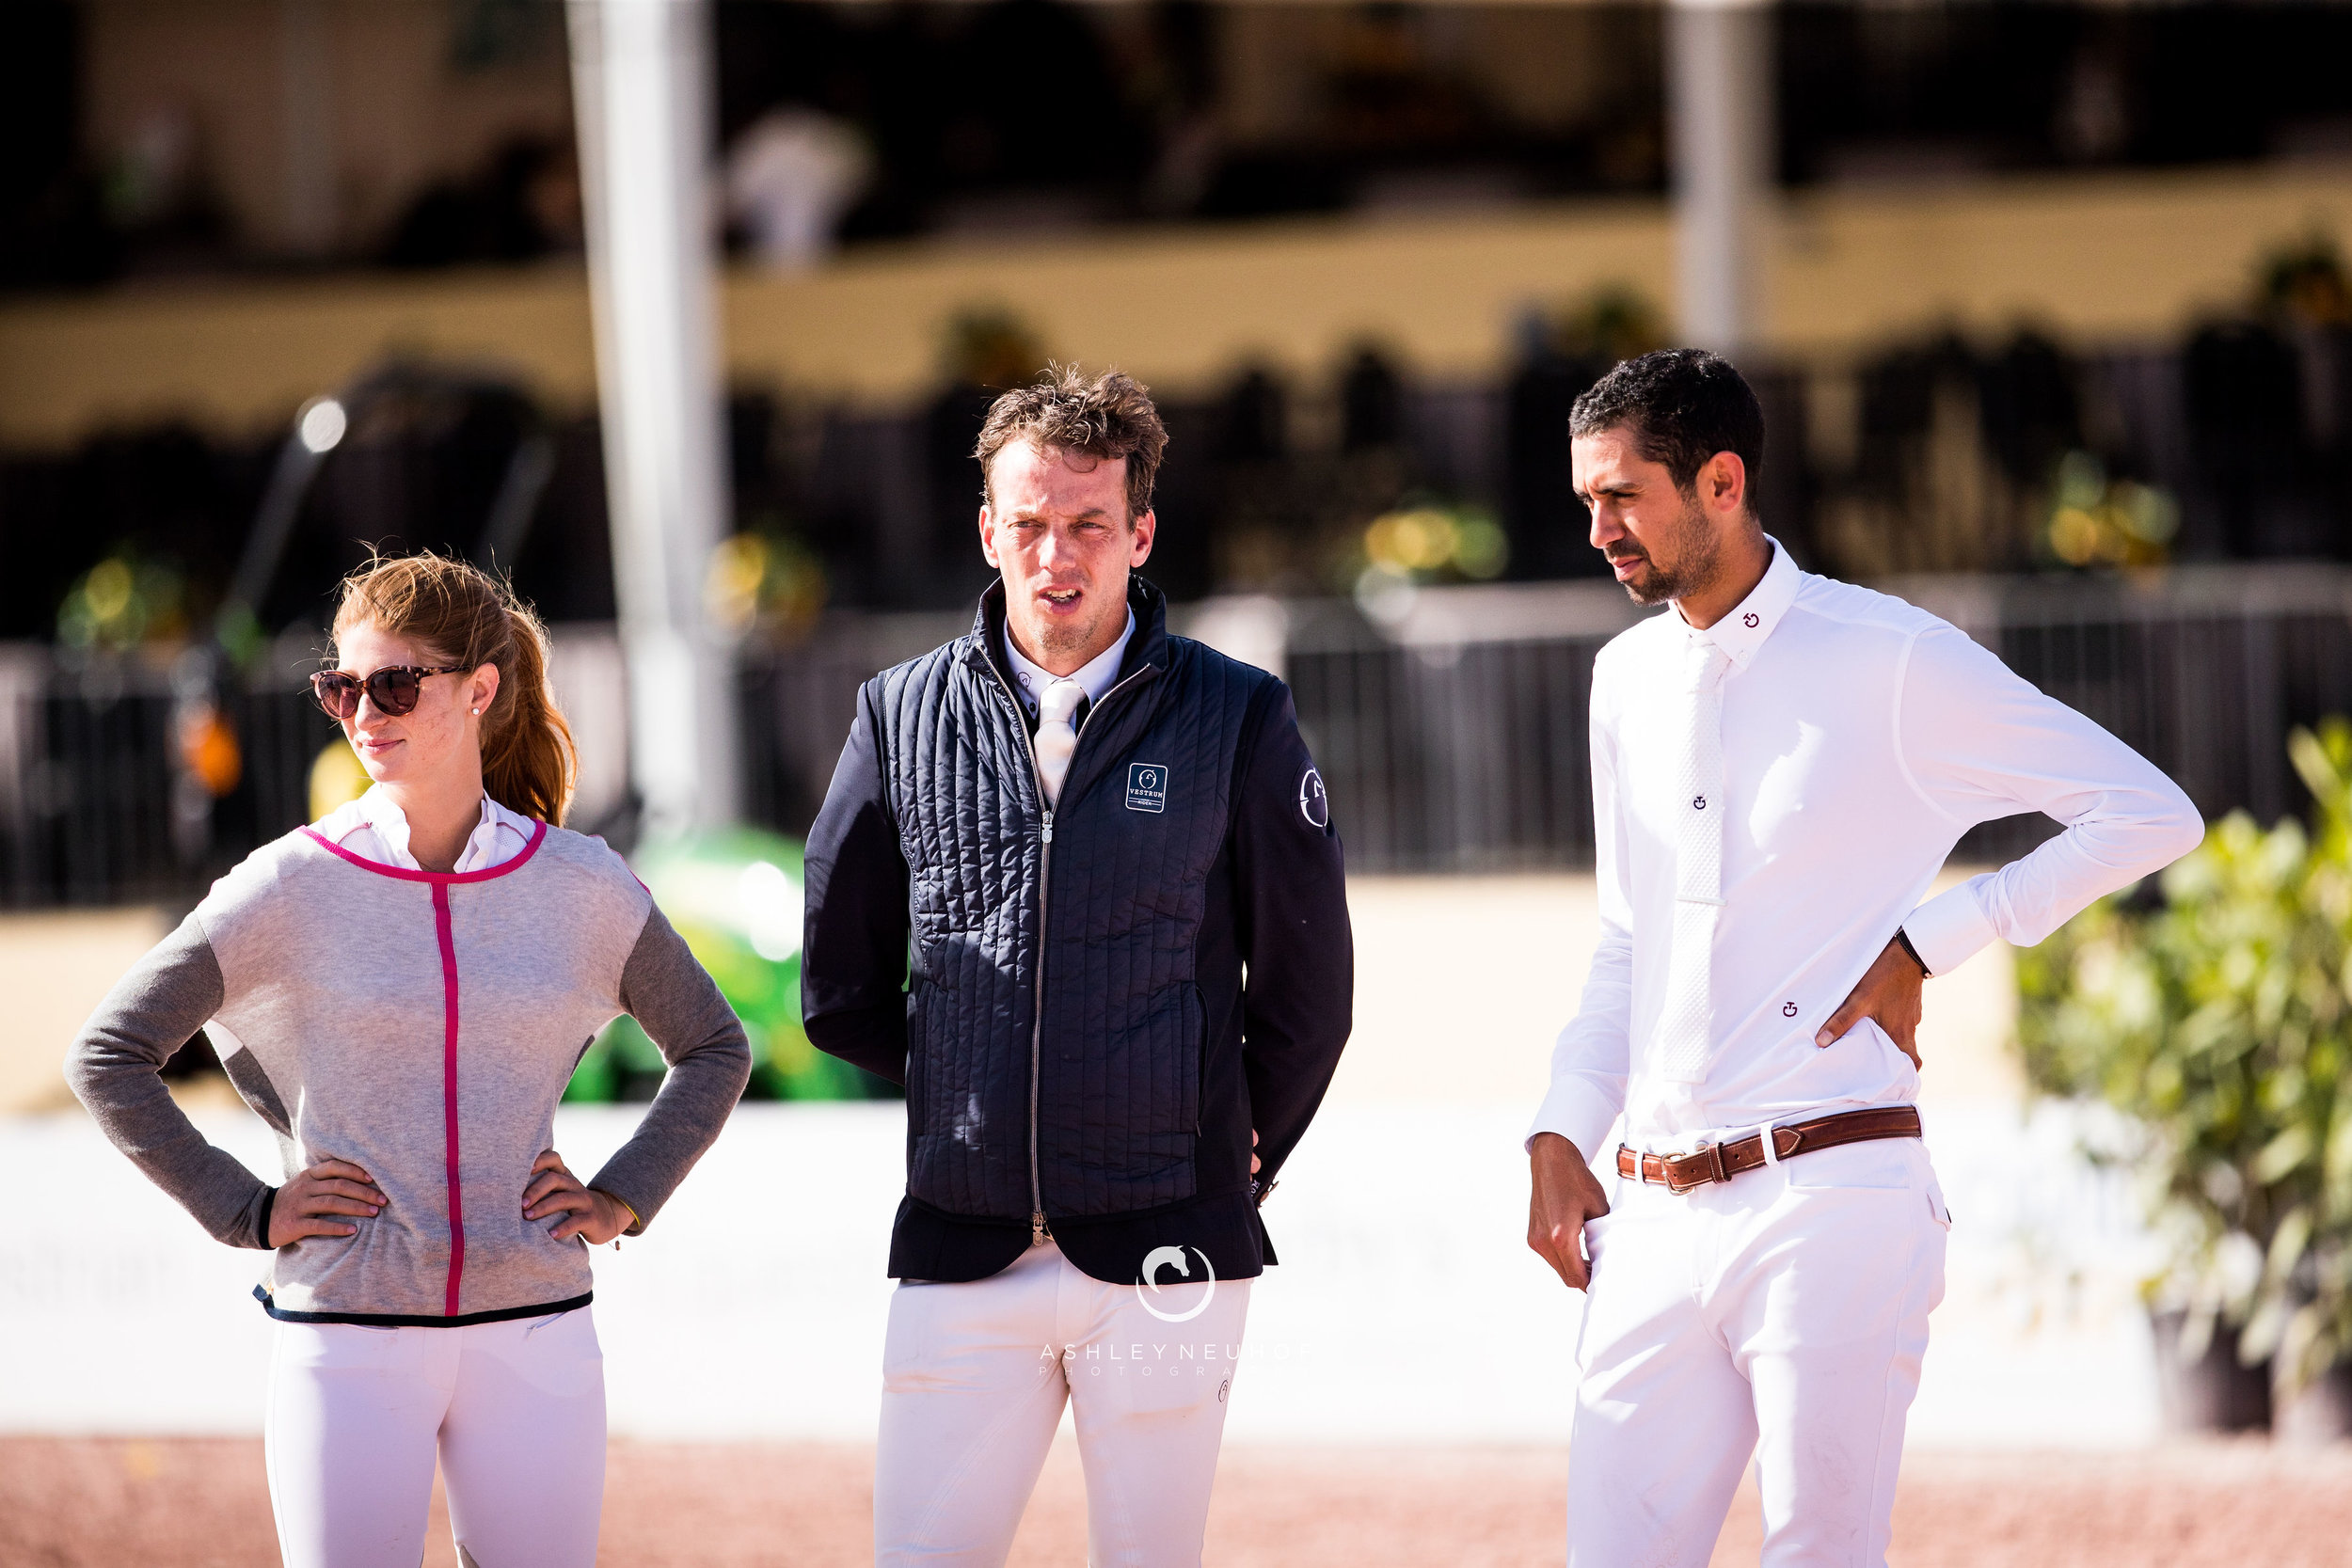 Jenn Gates, Harrie Smolders and Nayel Nassar at Winter Equestrian Festival 2019. Photo by Ashley Neuhof Photography.